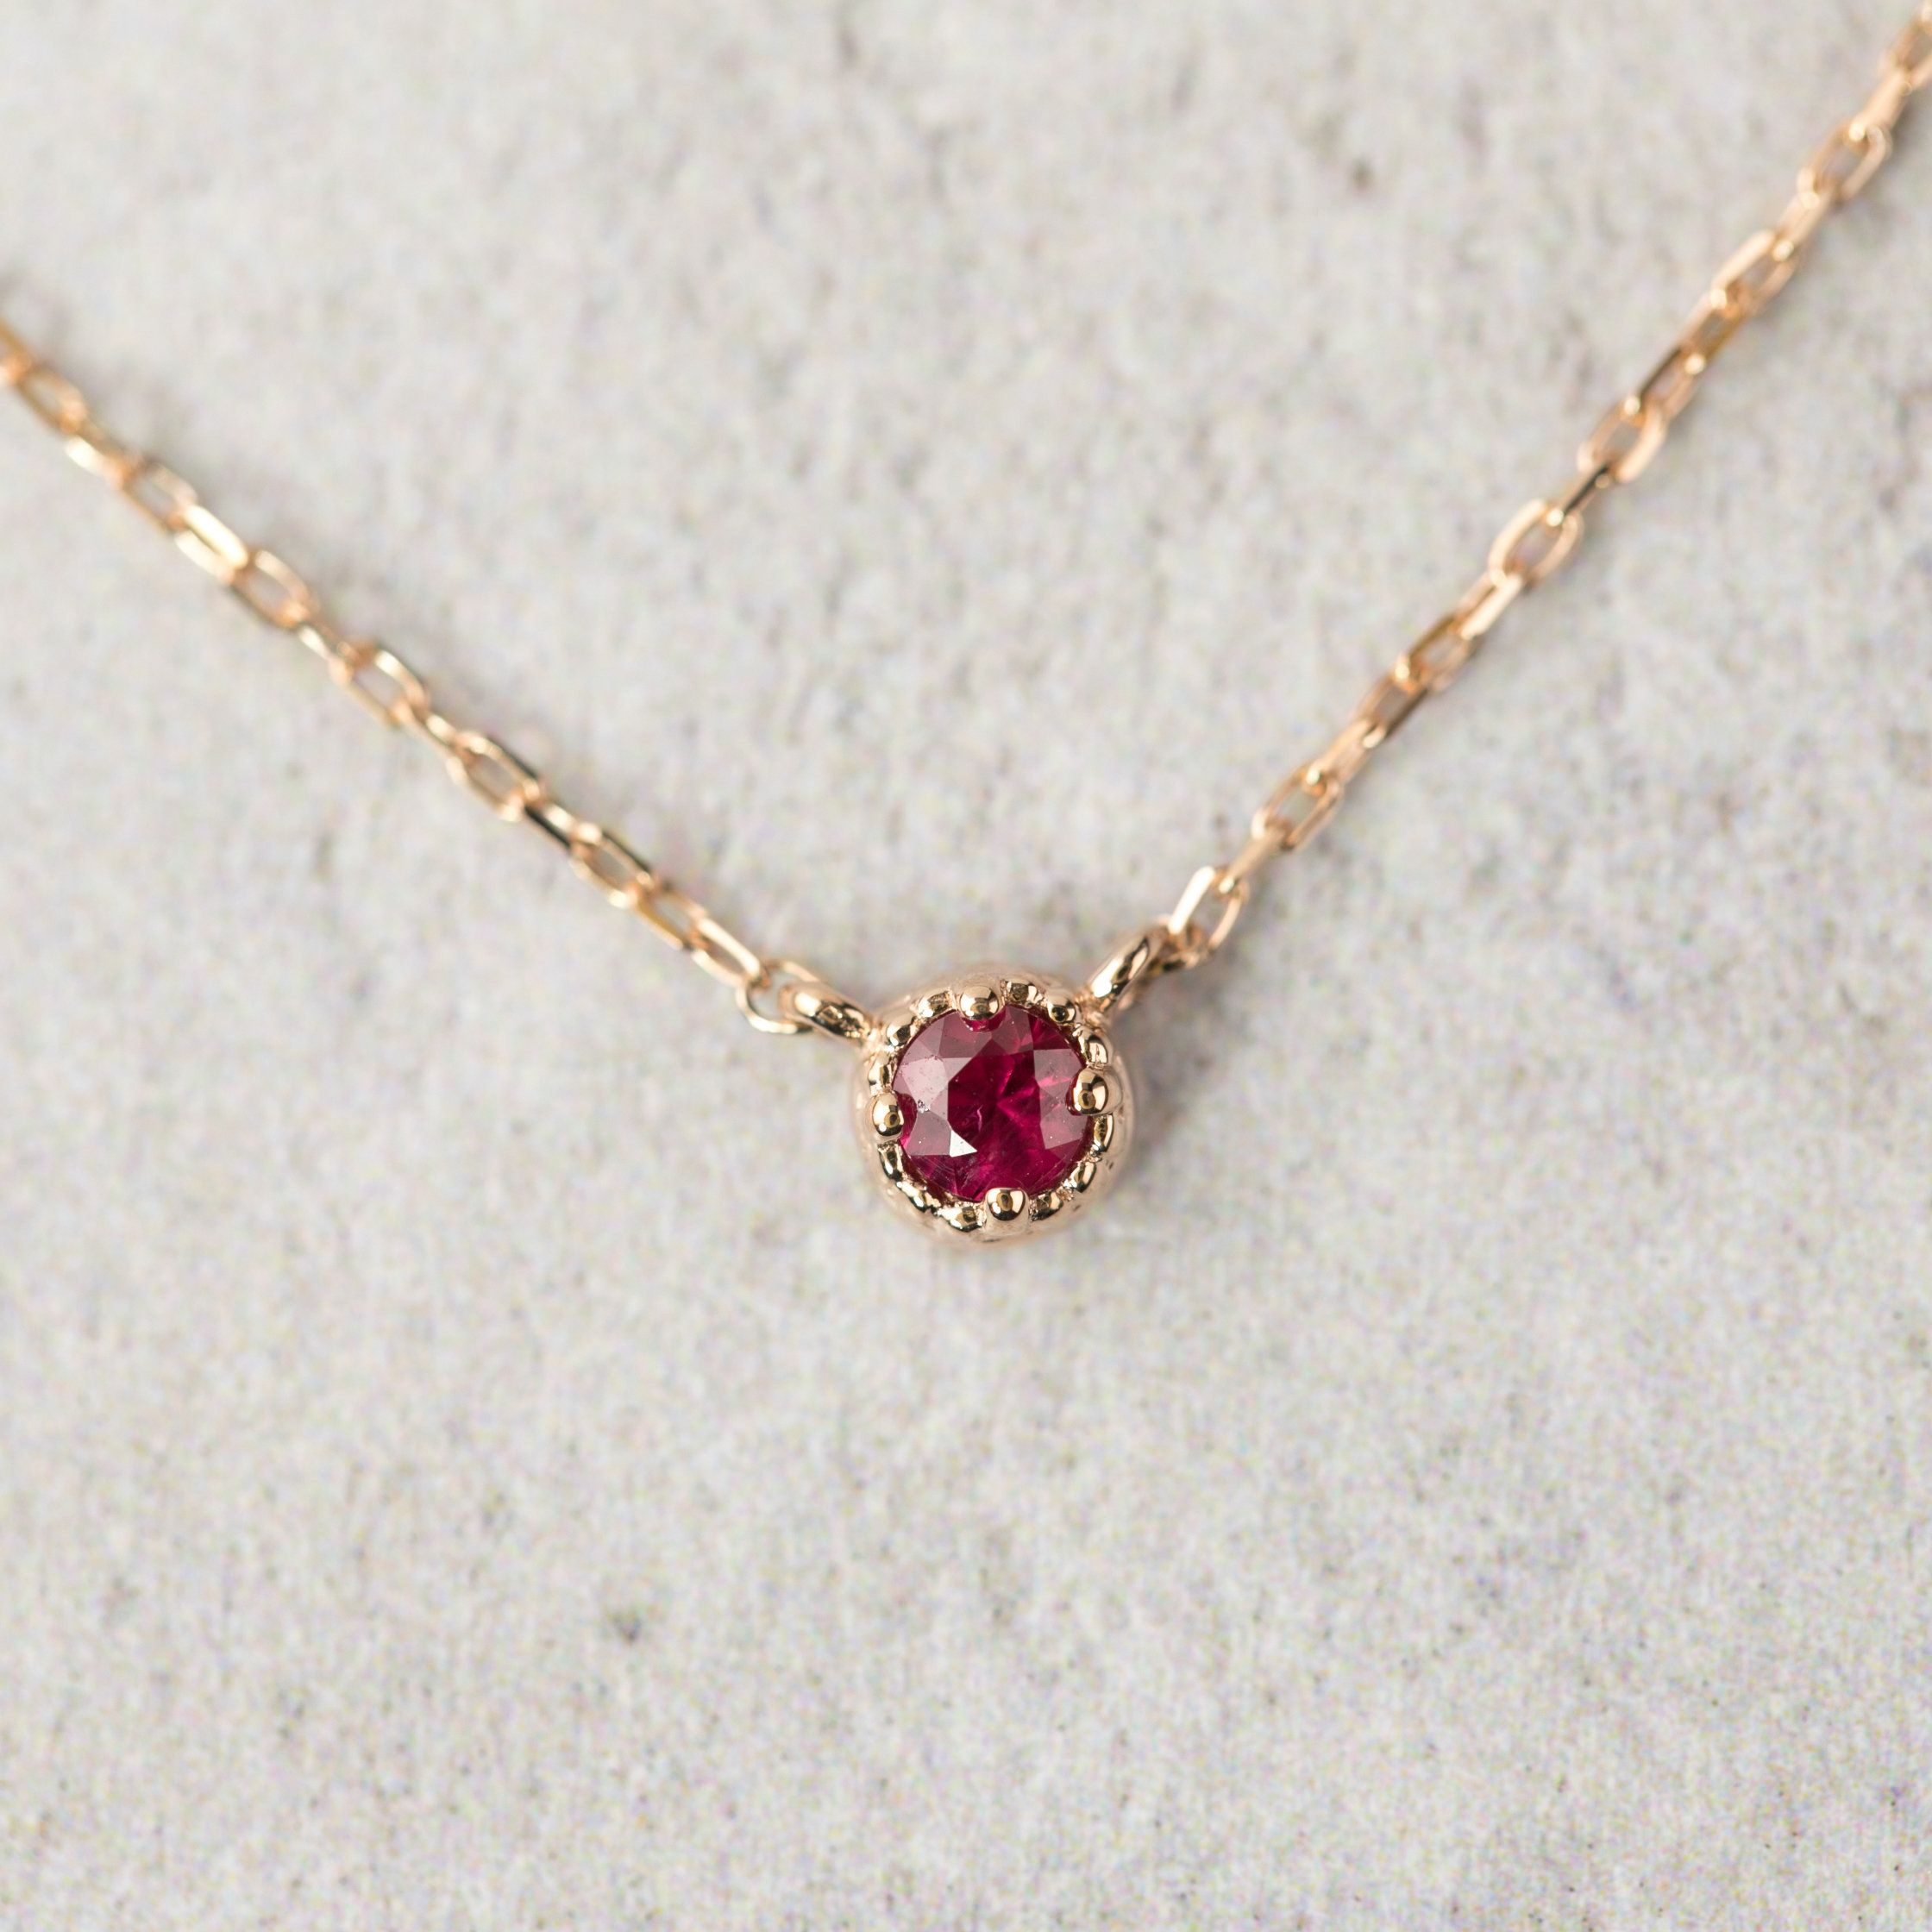 """Details about  /Real 14k yellow Gold Birth Stone July Charm Pendant Singapore Chain 18/"""" inch"""